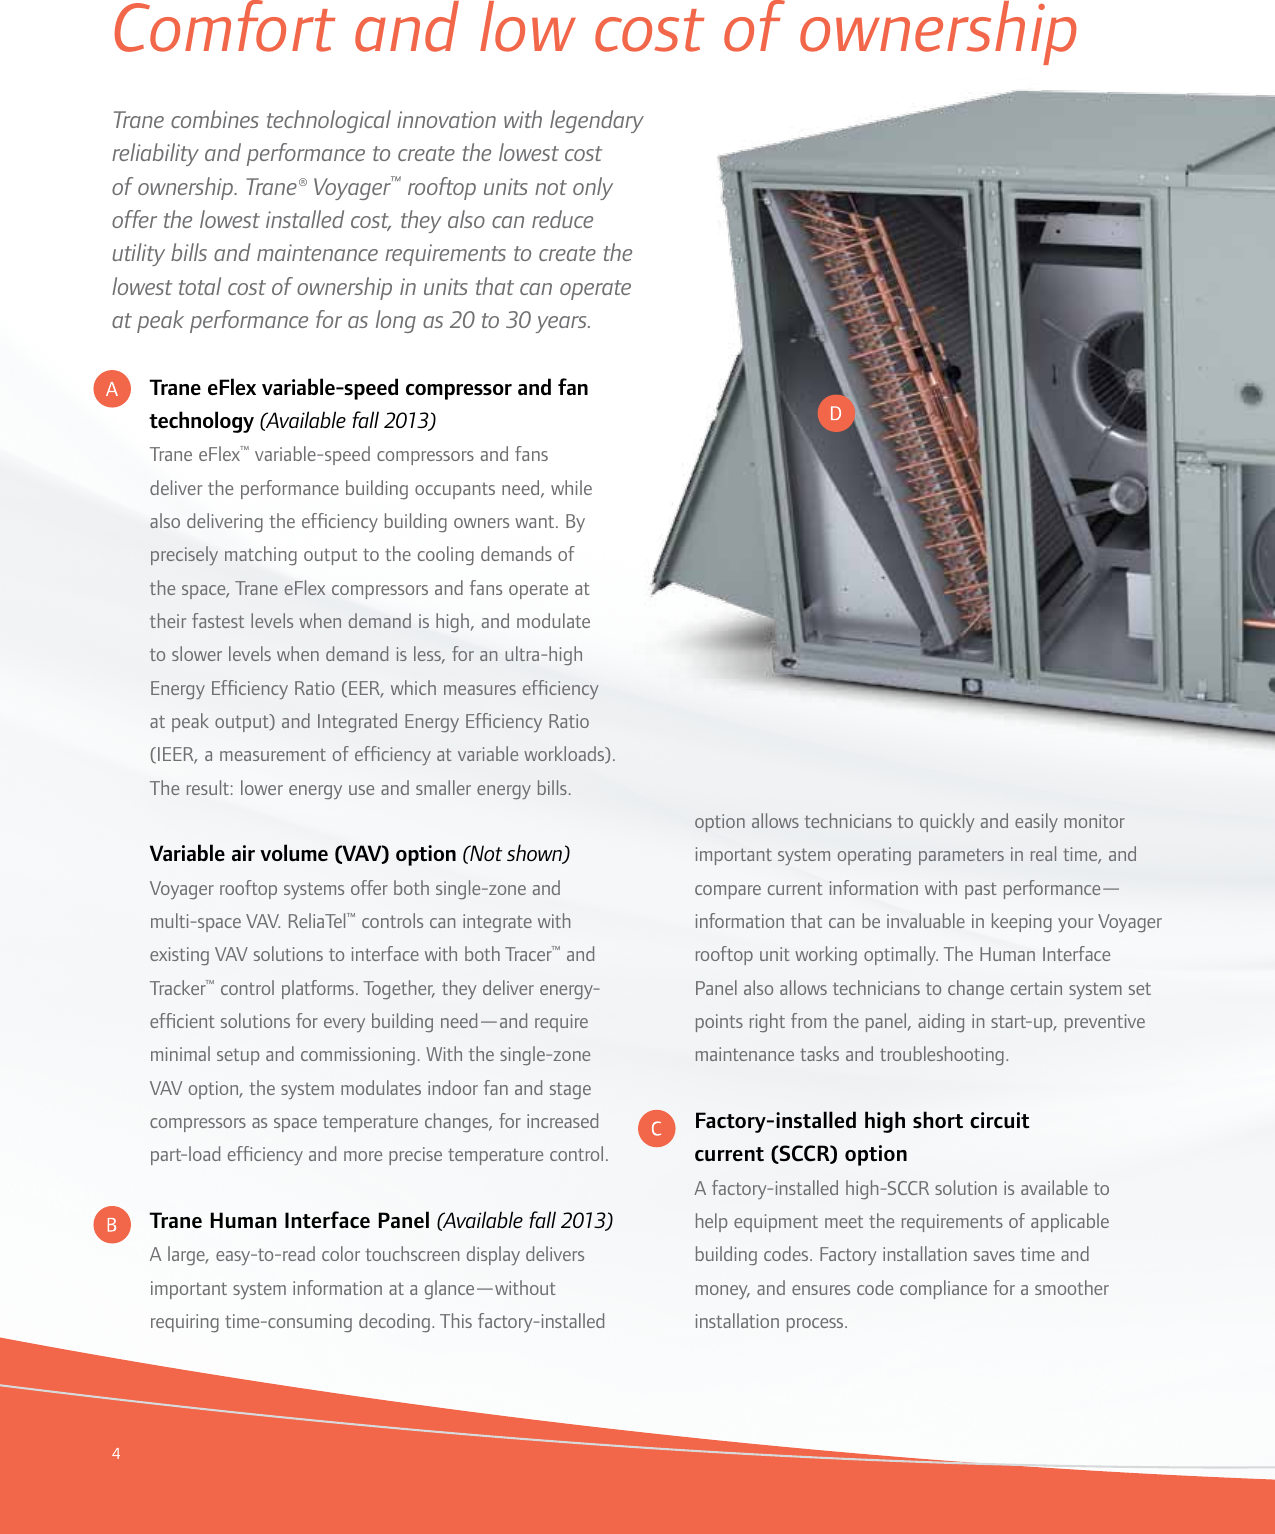 Trane Voyager 12 5 To 25 Tons Brochure